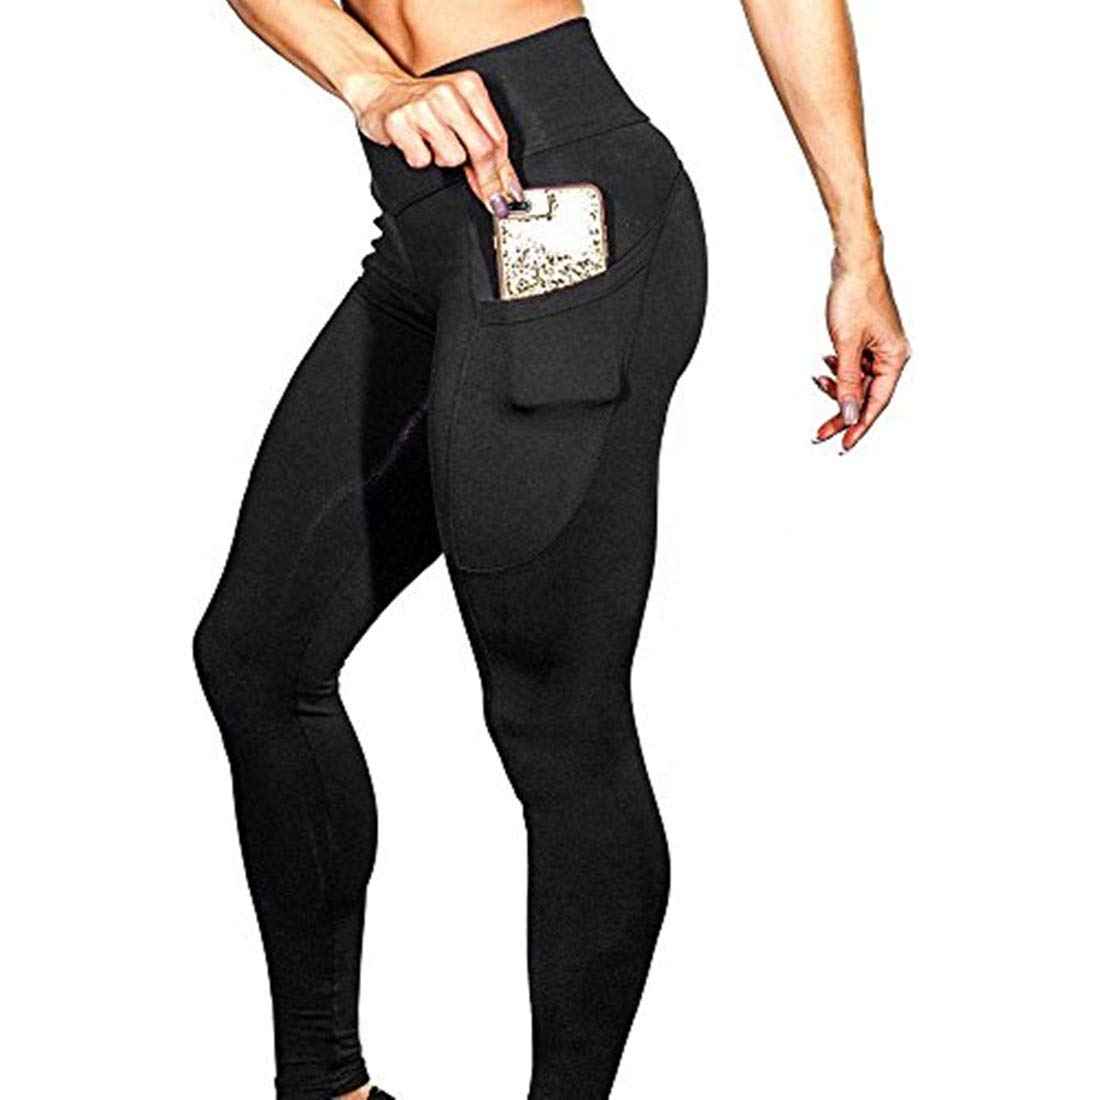 1f13534d243089 Amazon.com: Yoga Pants with Cell Phone Pockets,PASHY Women's Solid Workout  Leggings Fitness Sports Gym Running Yoga Athletic Pants: Clothing